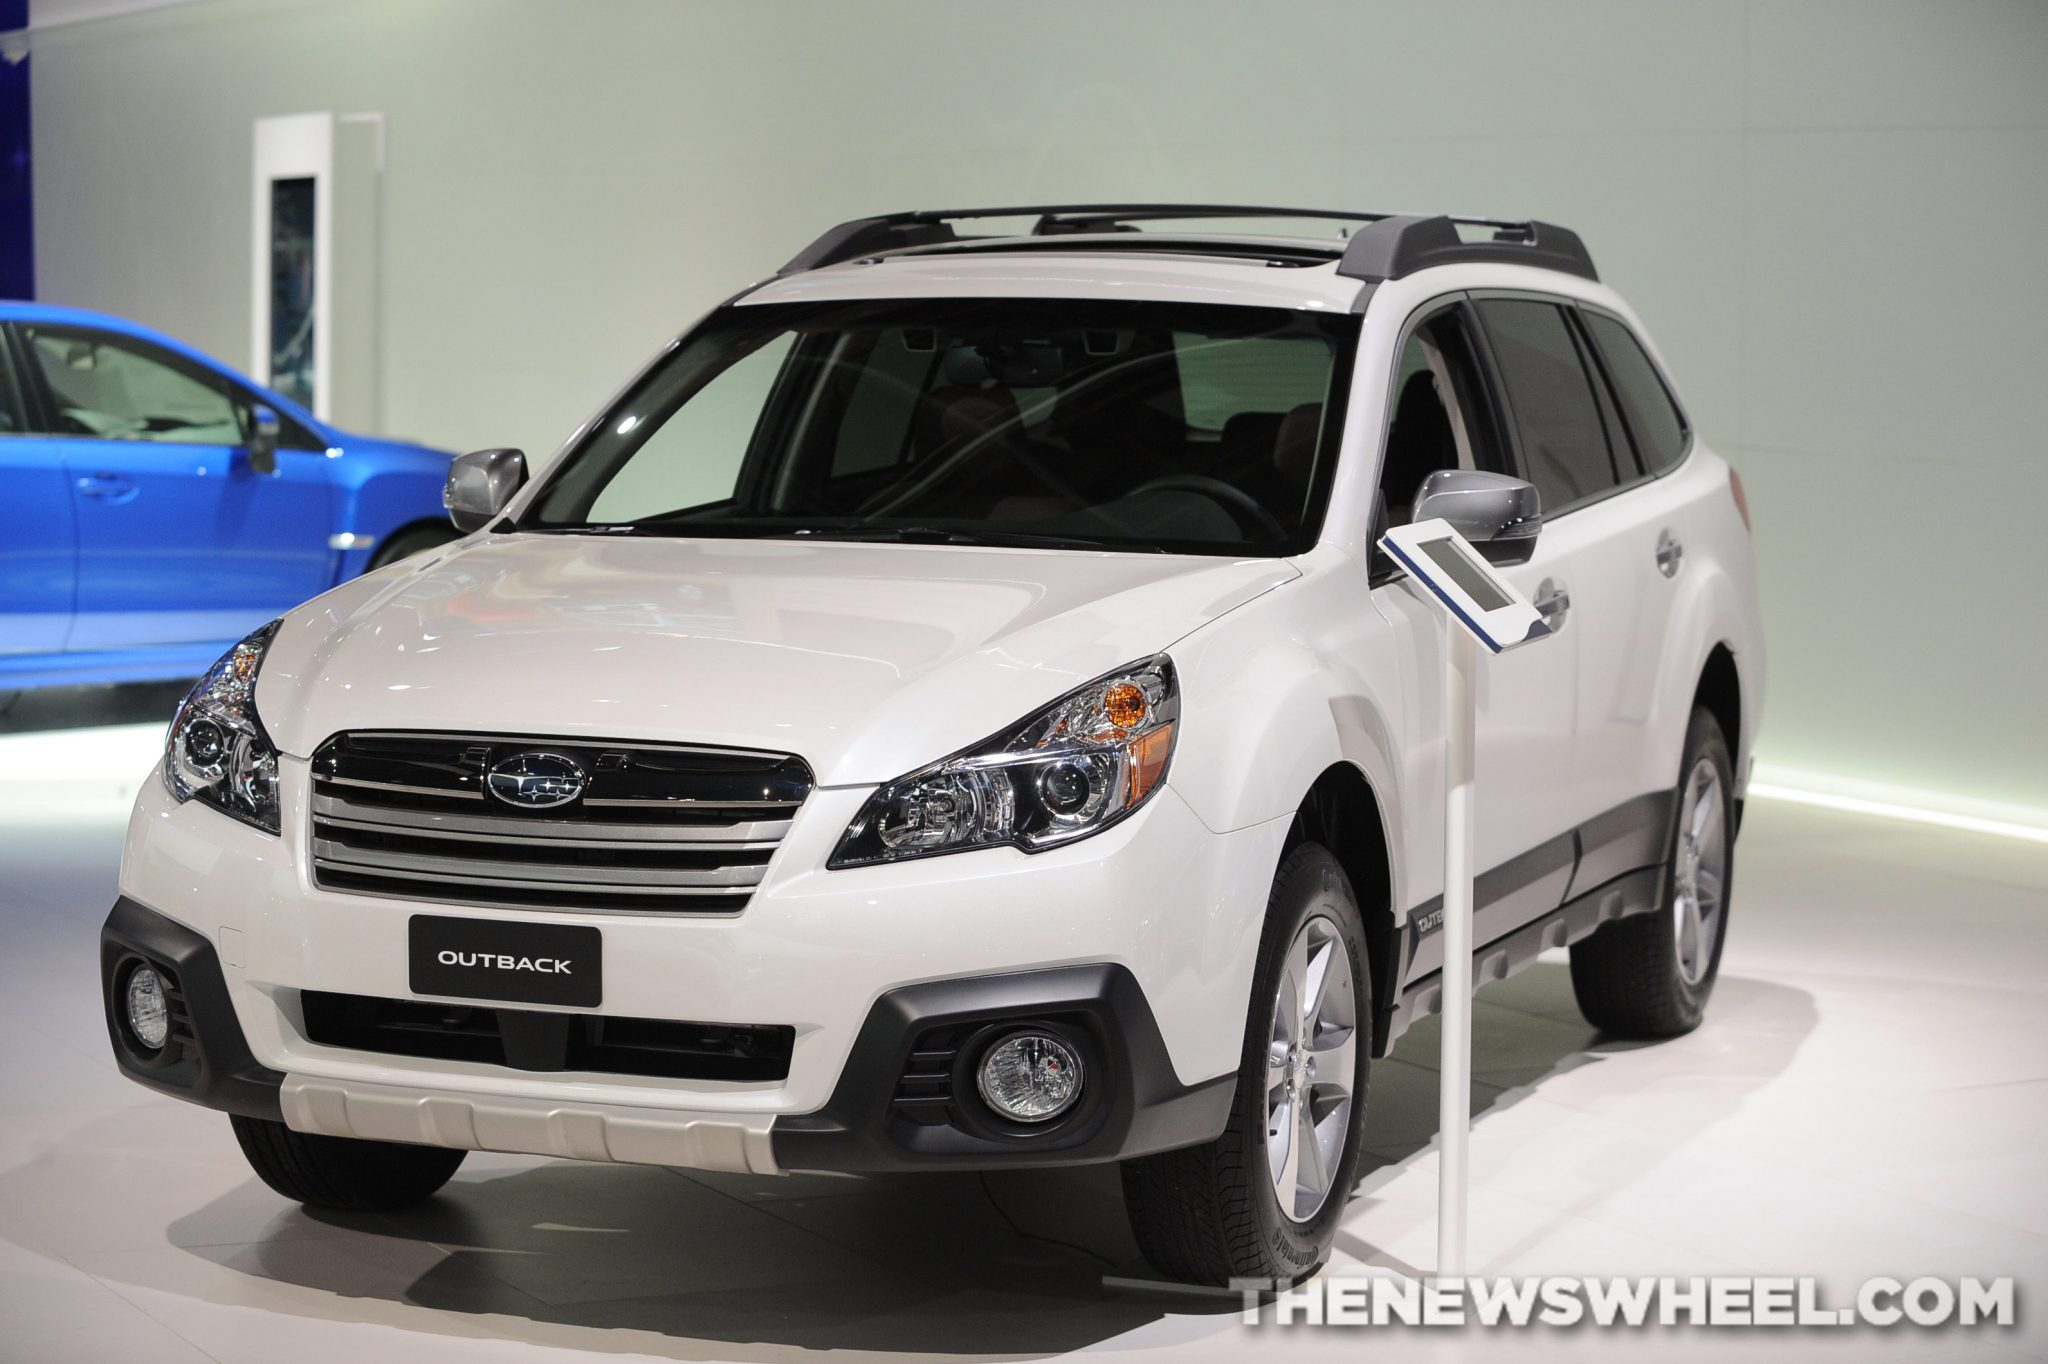 2014 Subaru Outback Overview The News Wheel